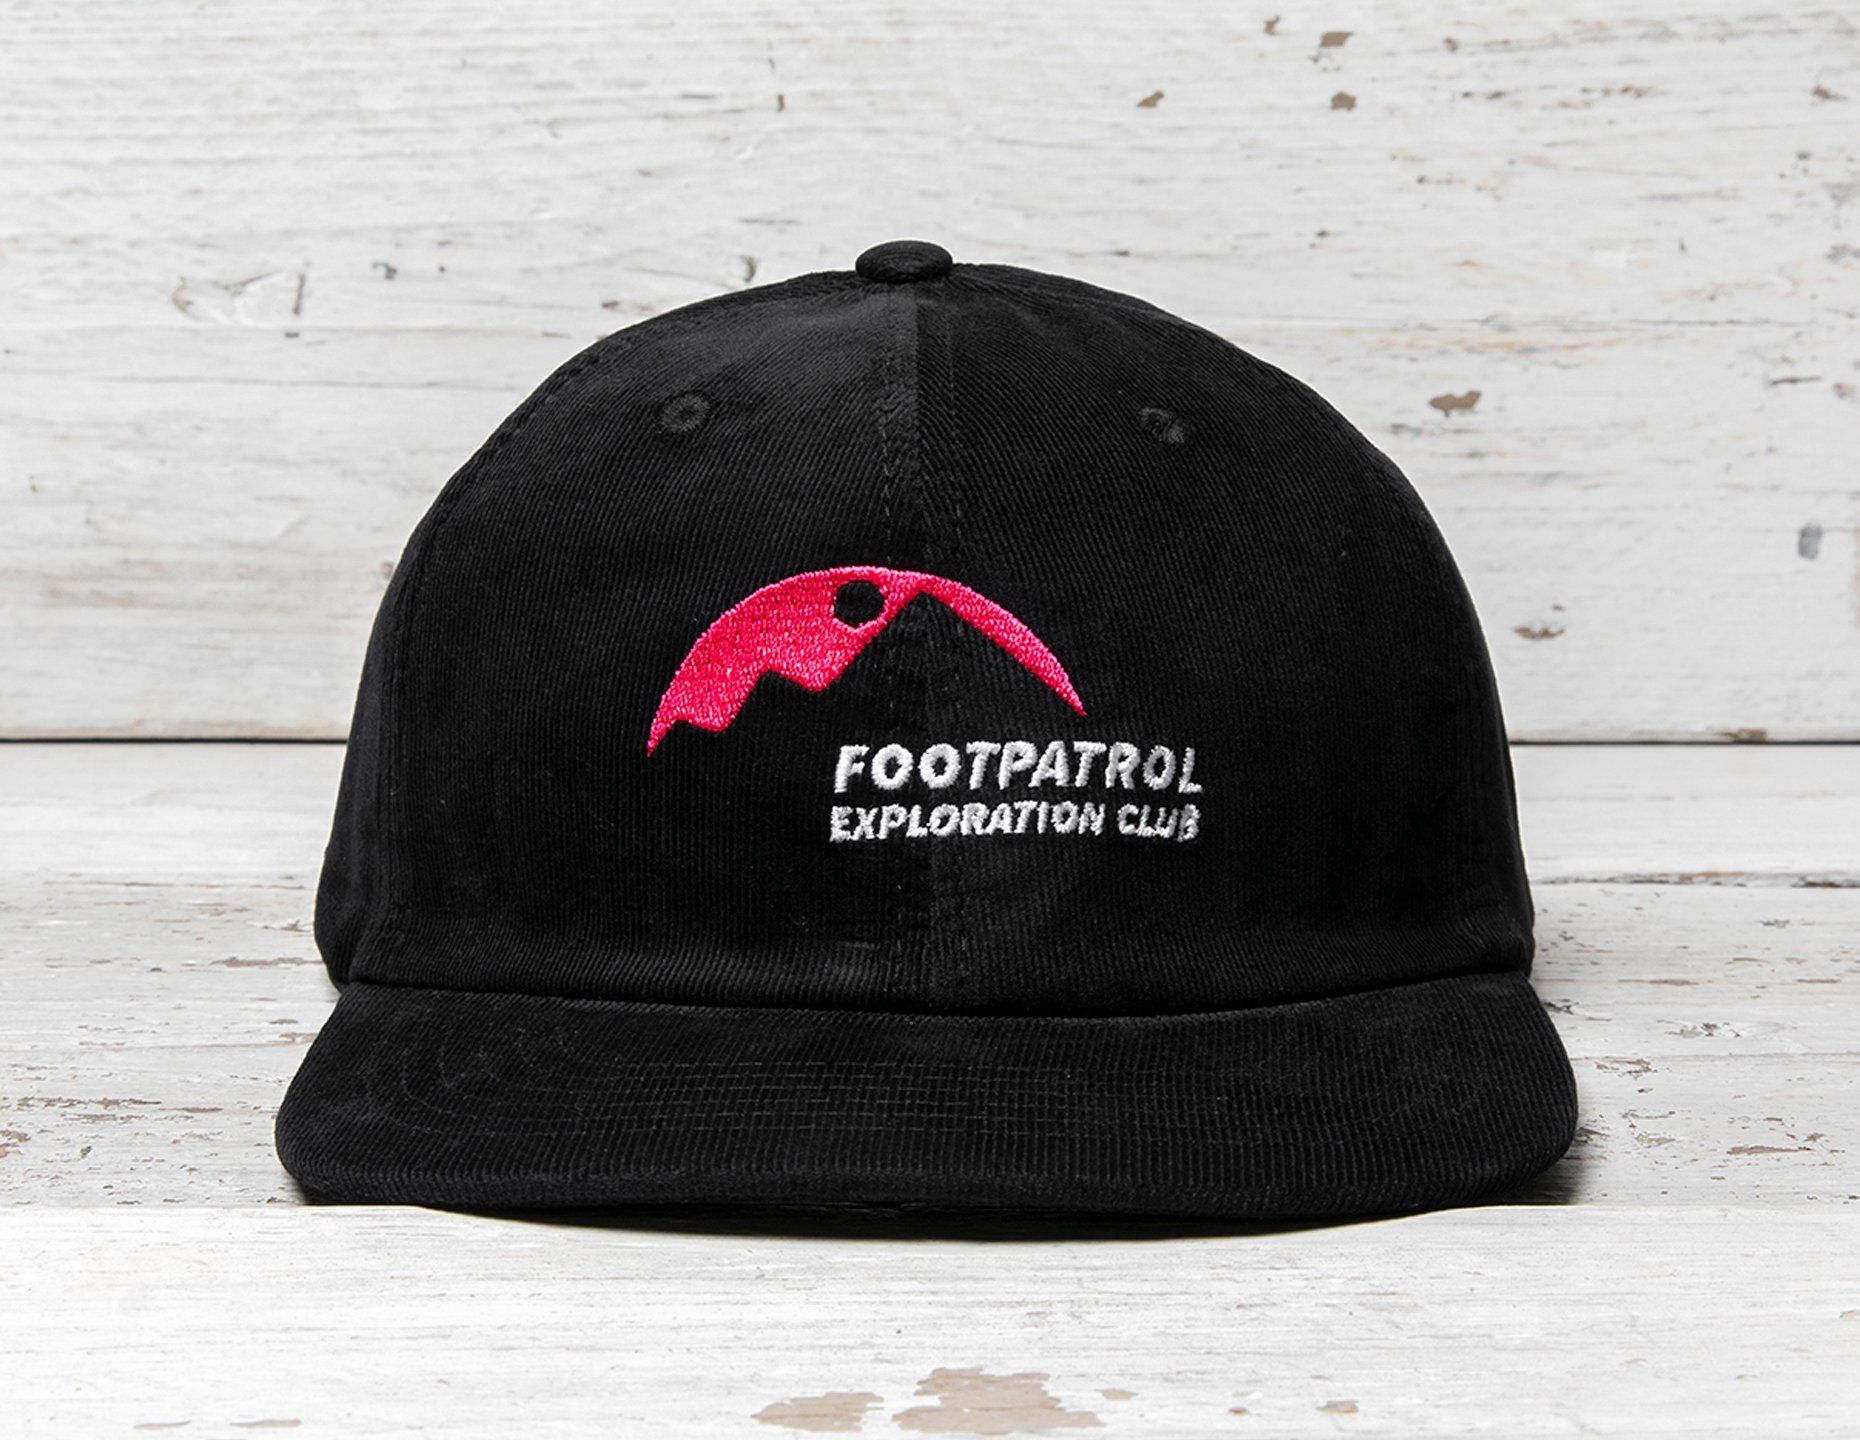 Footpatrol x Theobalds: Exploration Club Souvenir Cap